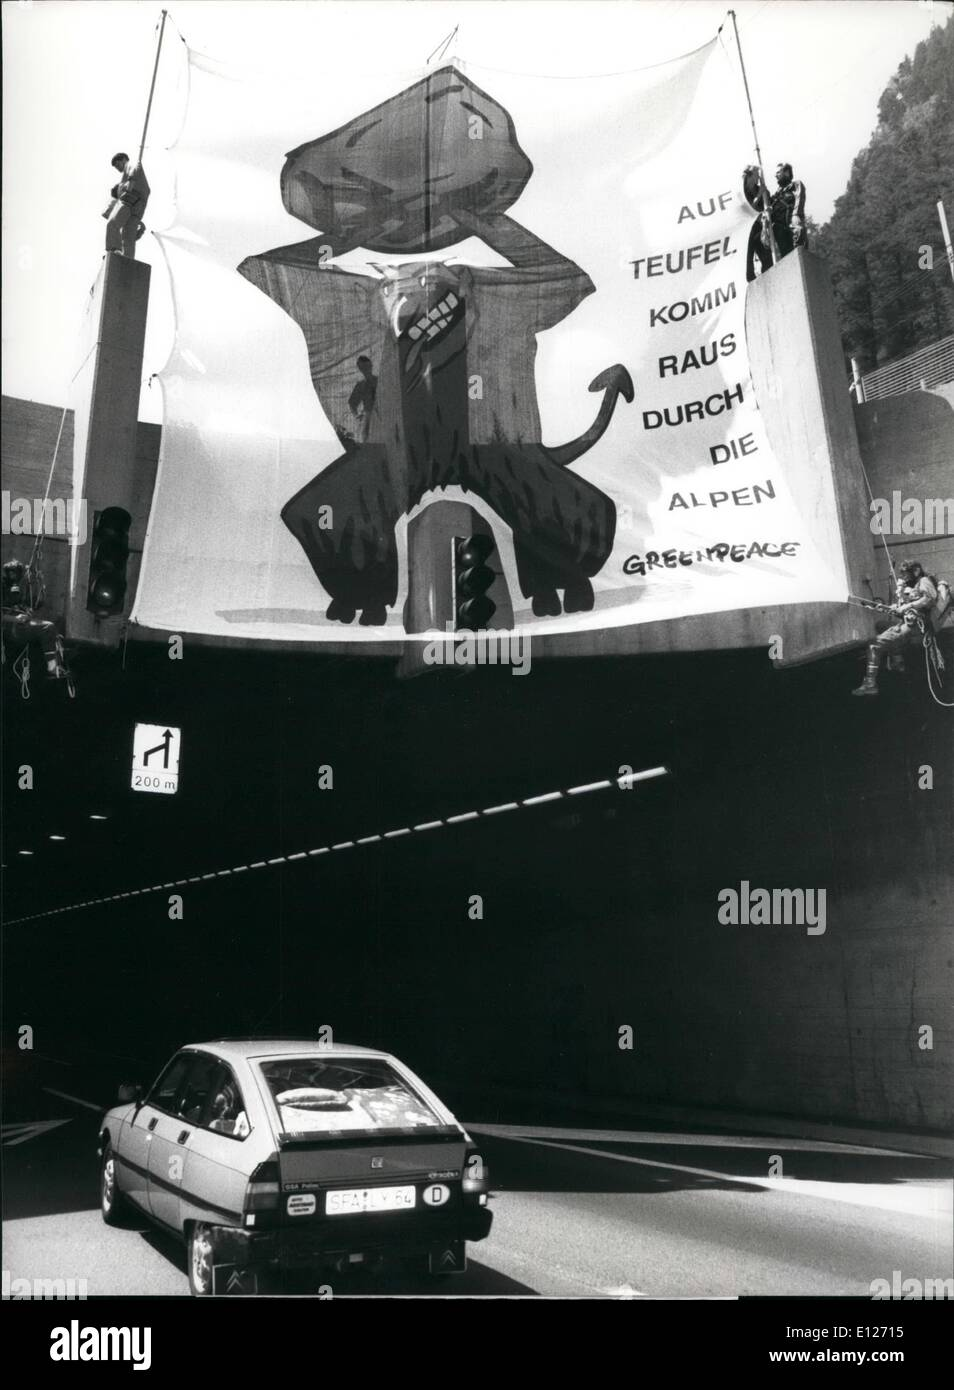 Jul. 07, 1990 - The Devil's Wrath: A huge image of the devil mounted over the entrance to the Gotthard-tunnel met the many drivers travelling South, July 14. Those stuck in the heavy traffic were also given a leaflet by Greenpeace activists that describes in detail the ecological damage caused by individual transport. The Gotthard-route - highly frequented all year through - usually gets jammed during vacation time - Stock Image